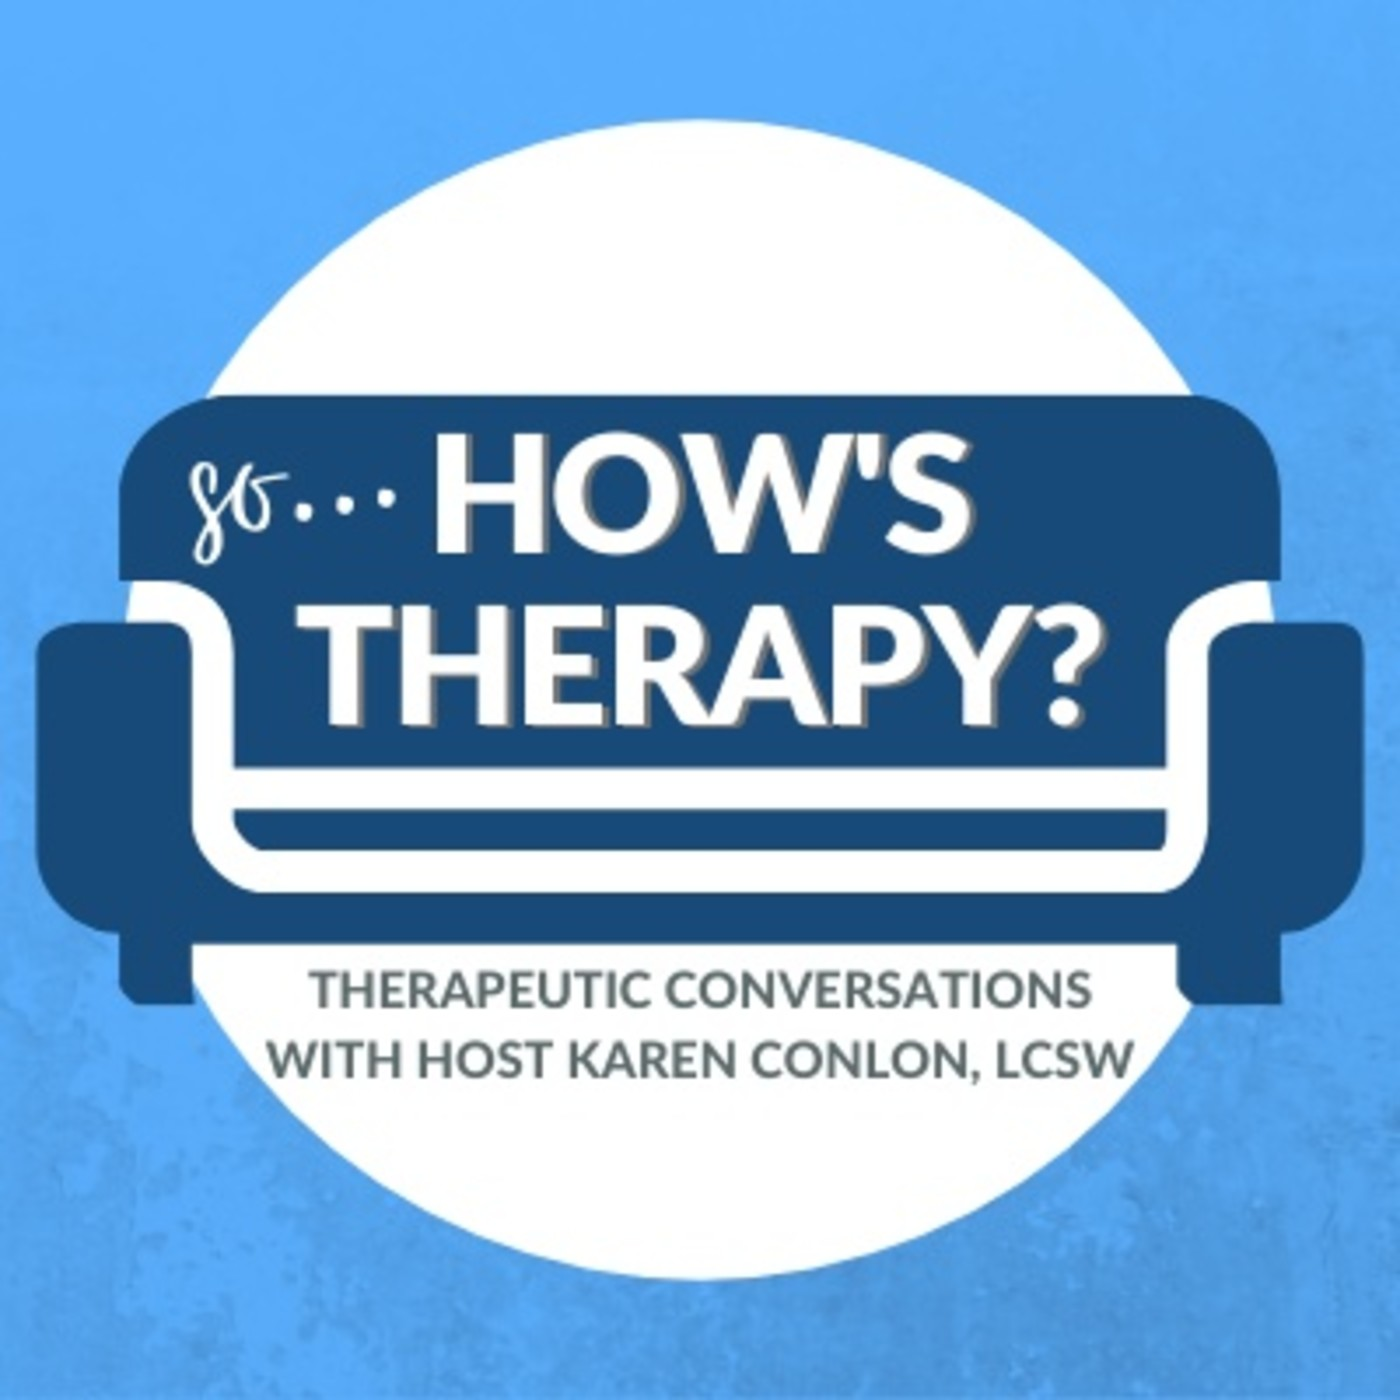 Artwork for podcast So, How's Therapy?